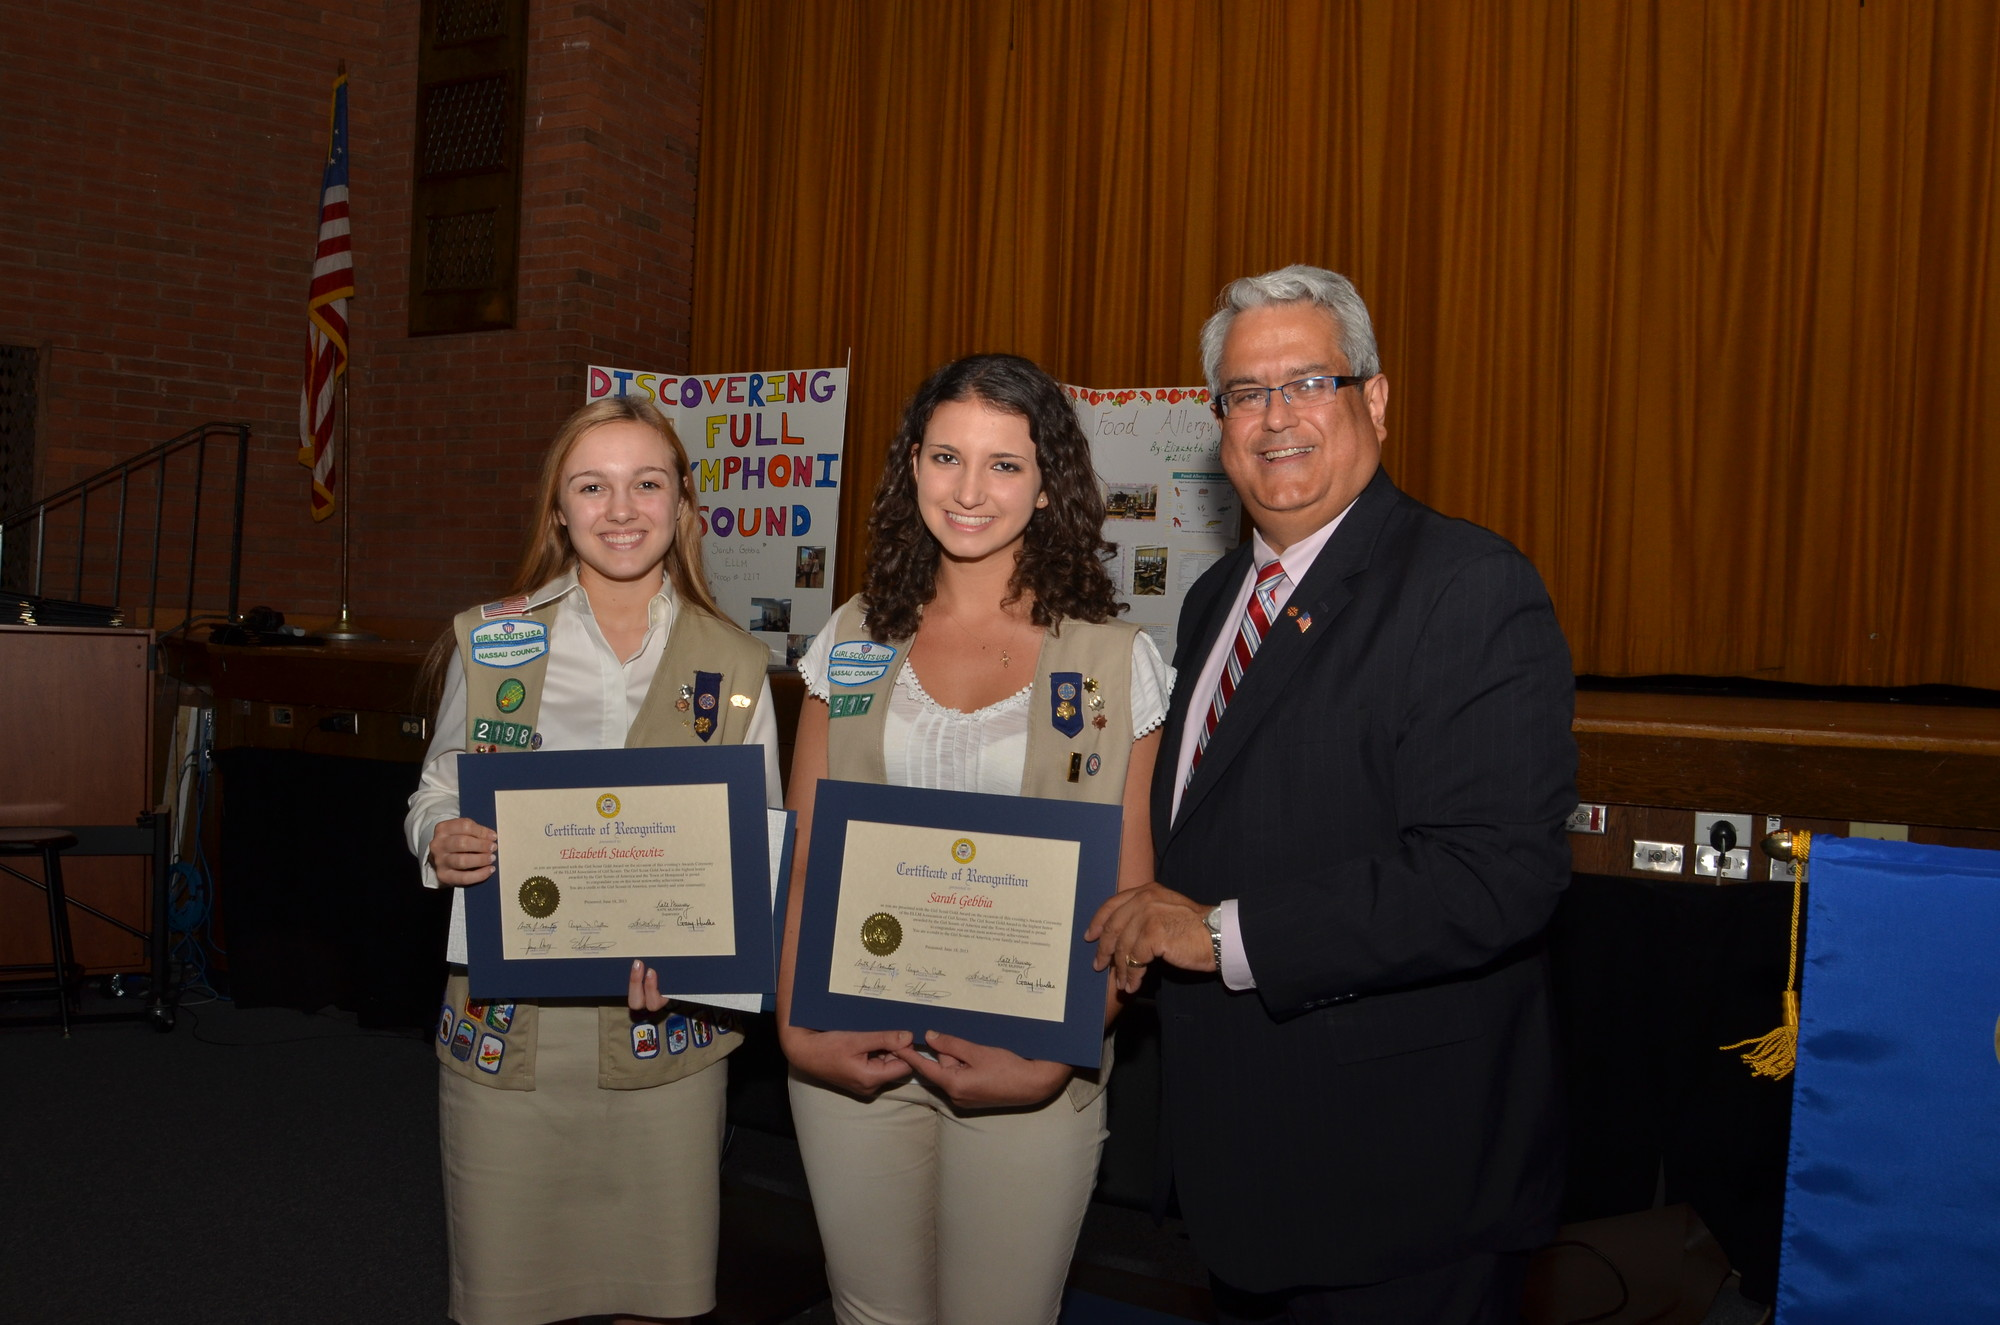 Councilman Santino congratulated Elizabeth Stackowitz, left, and Sarah Gebbia for their tireless service as Girl Scouts and presented them with the Gold Award.